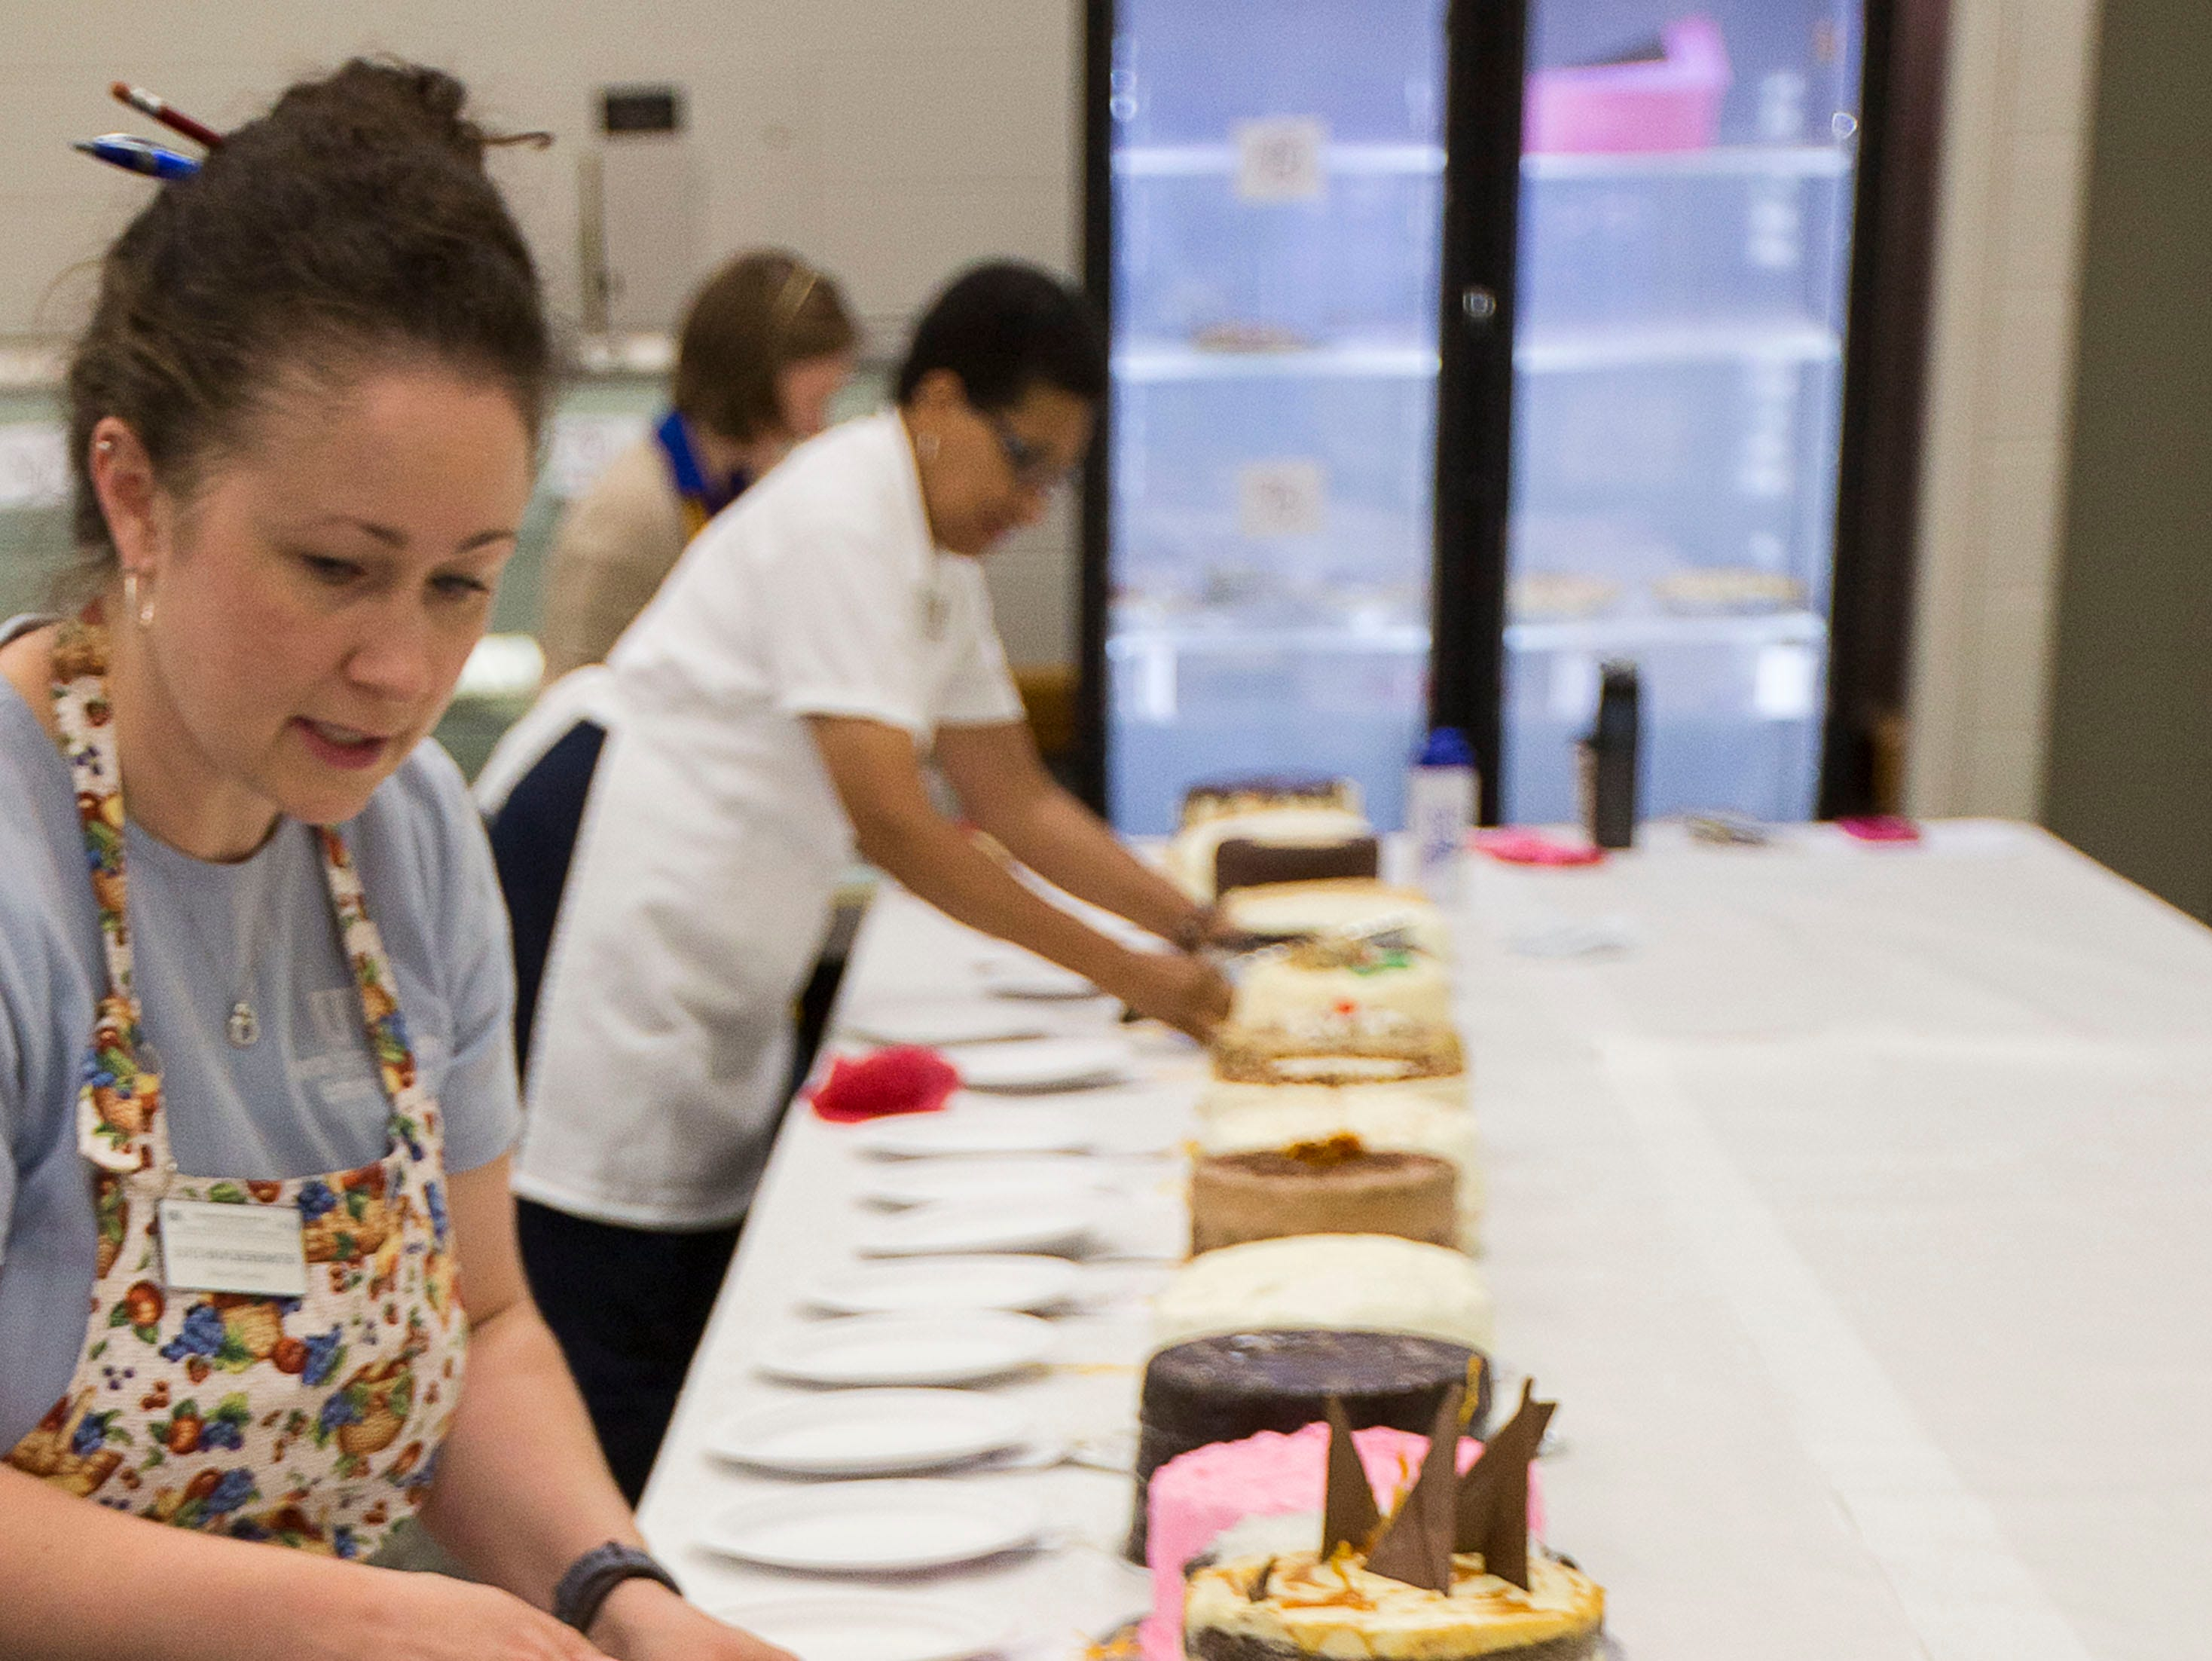 """Jeanette Chapman smells the Choco Mint cake during the judging of """"Favorite Cake"""" at the Kentucky State Fair on Tuesday, August 14, 2018."""